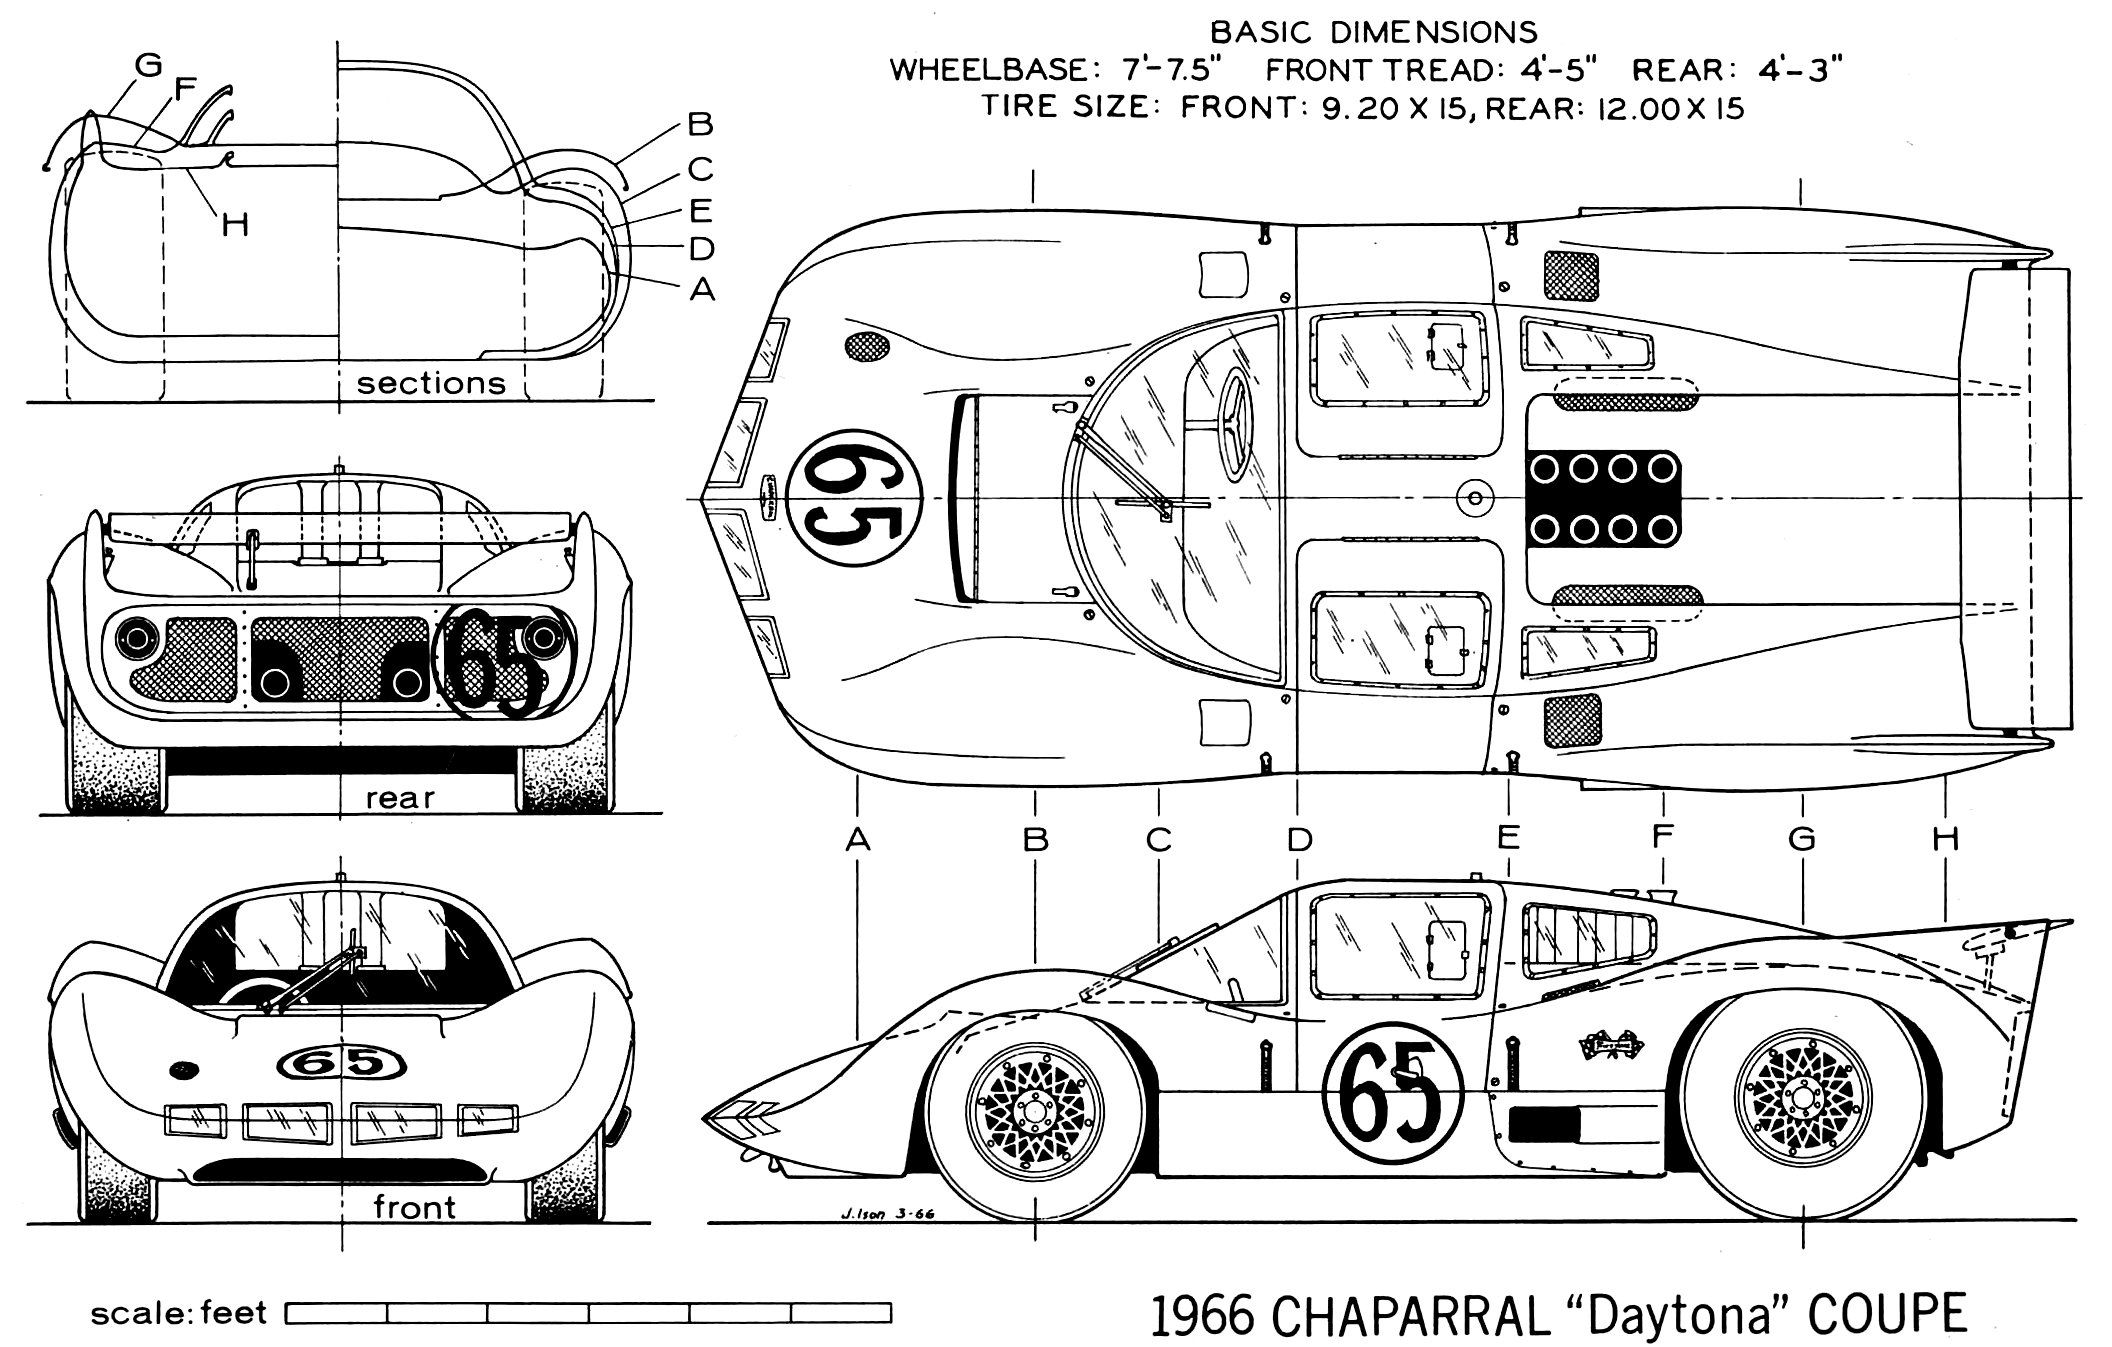 Pin on Chaparral Racing Cars